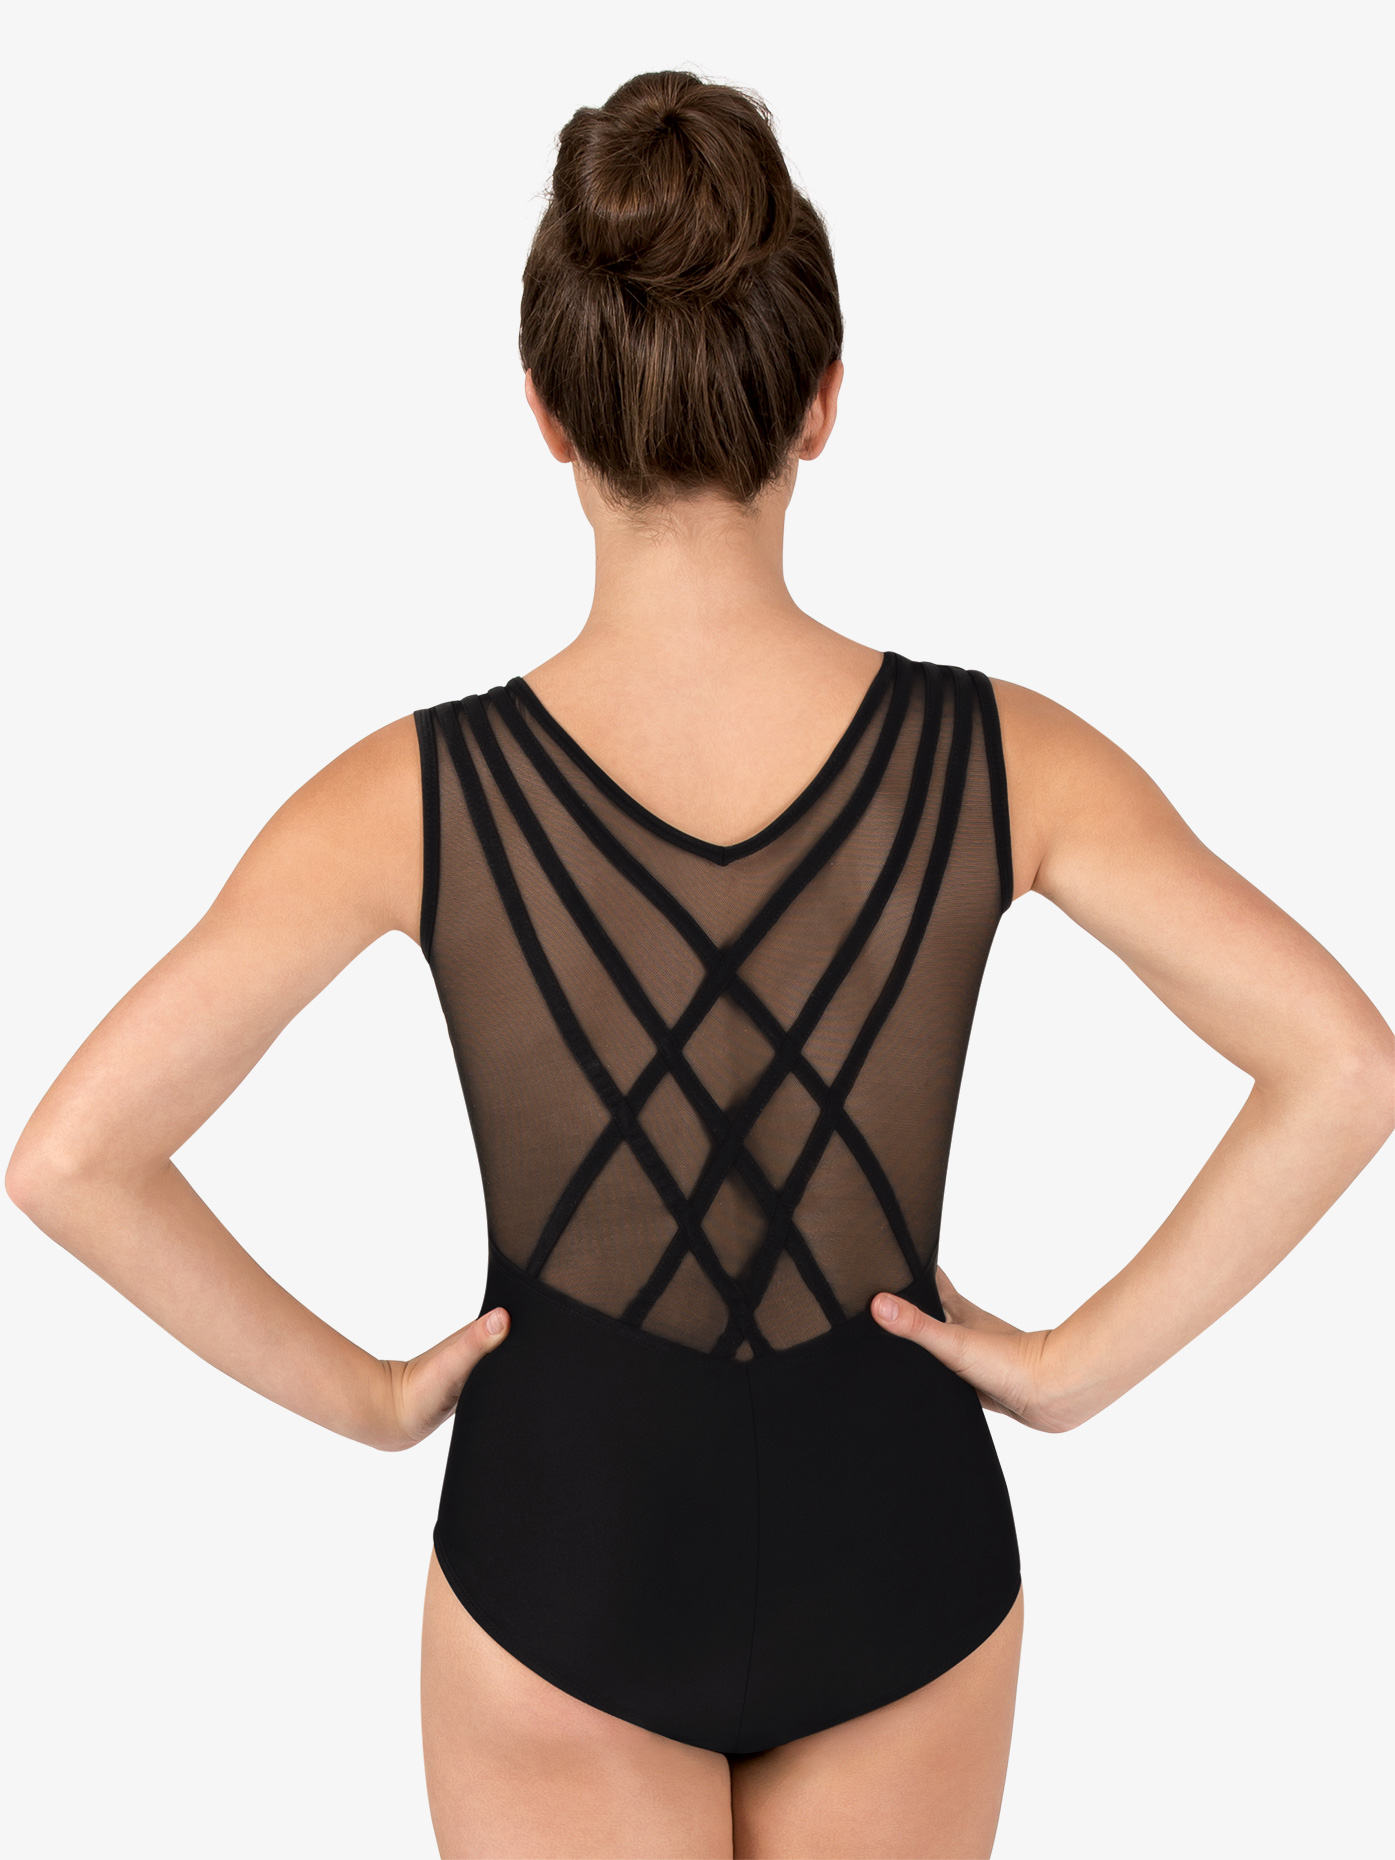 Natalie Couture Womens Mesh Back Binding Tank Leotard NC8910